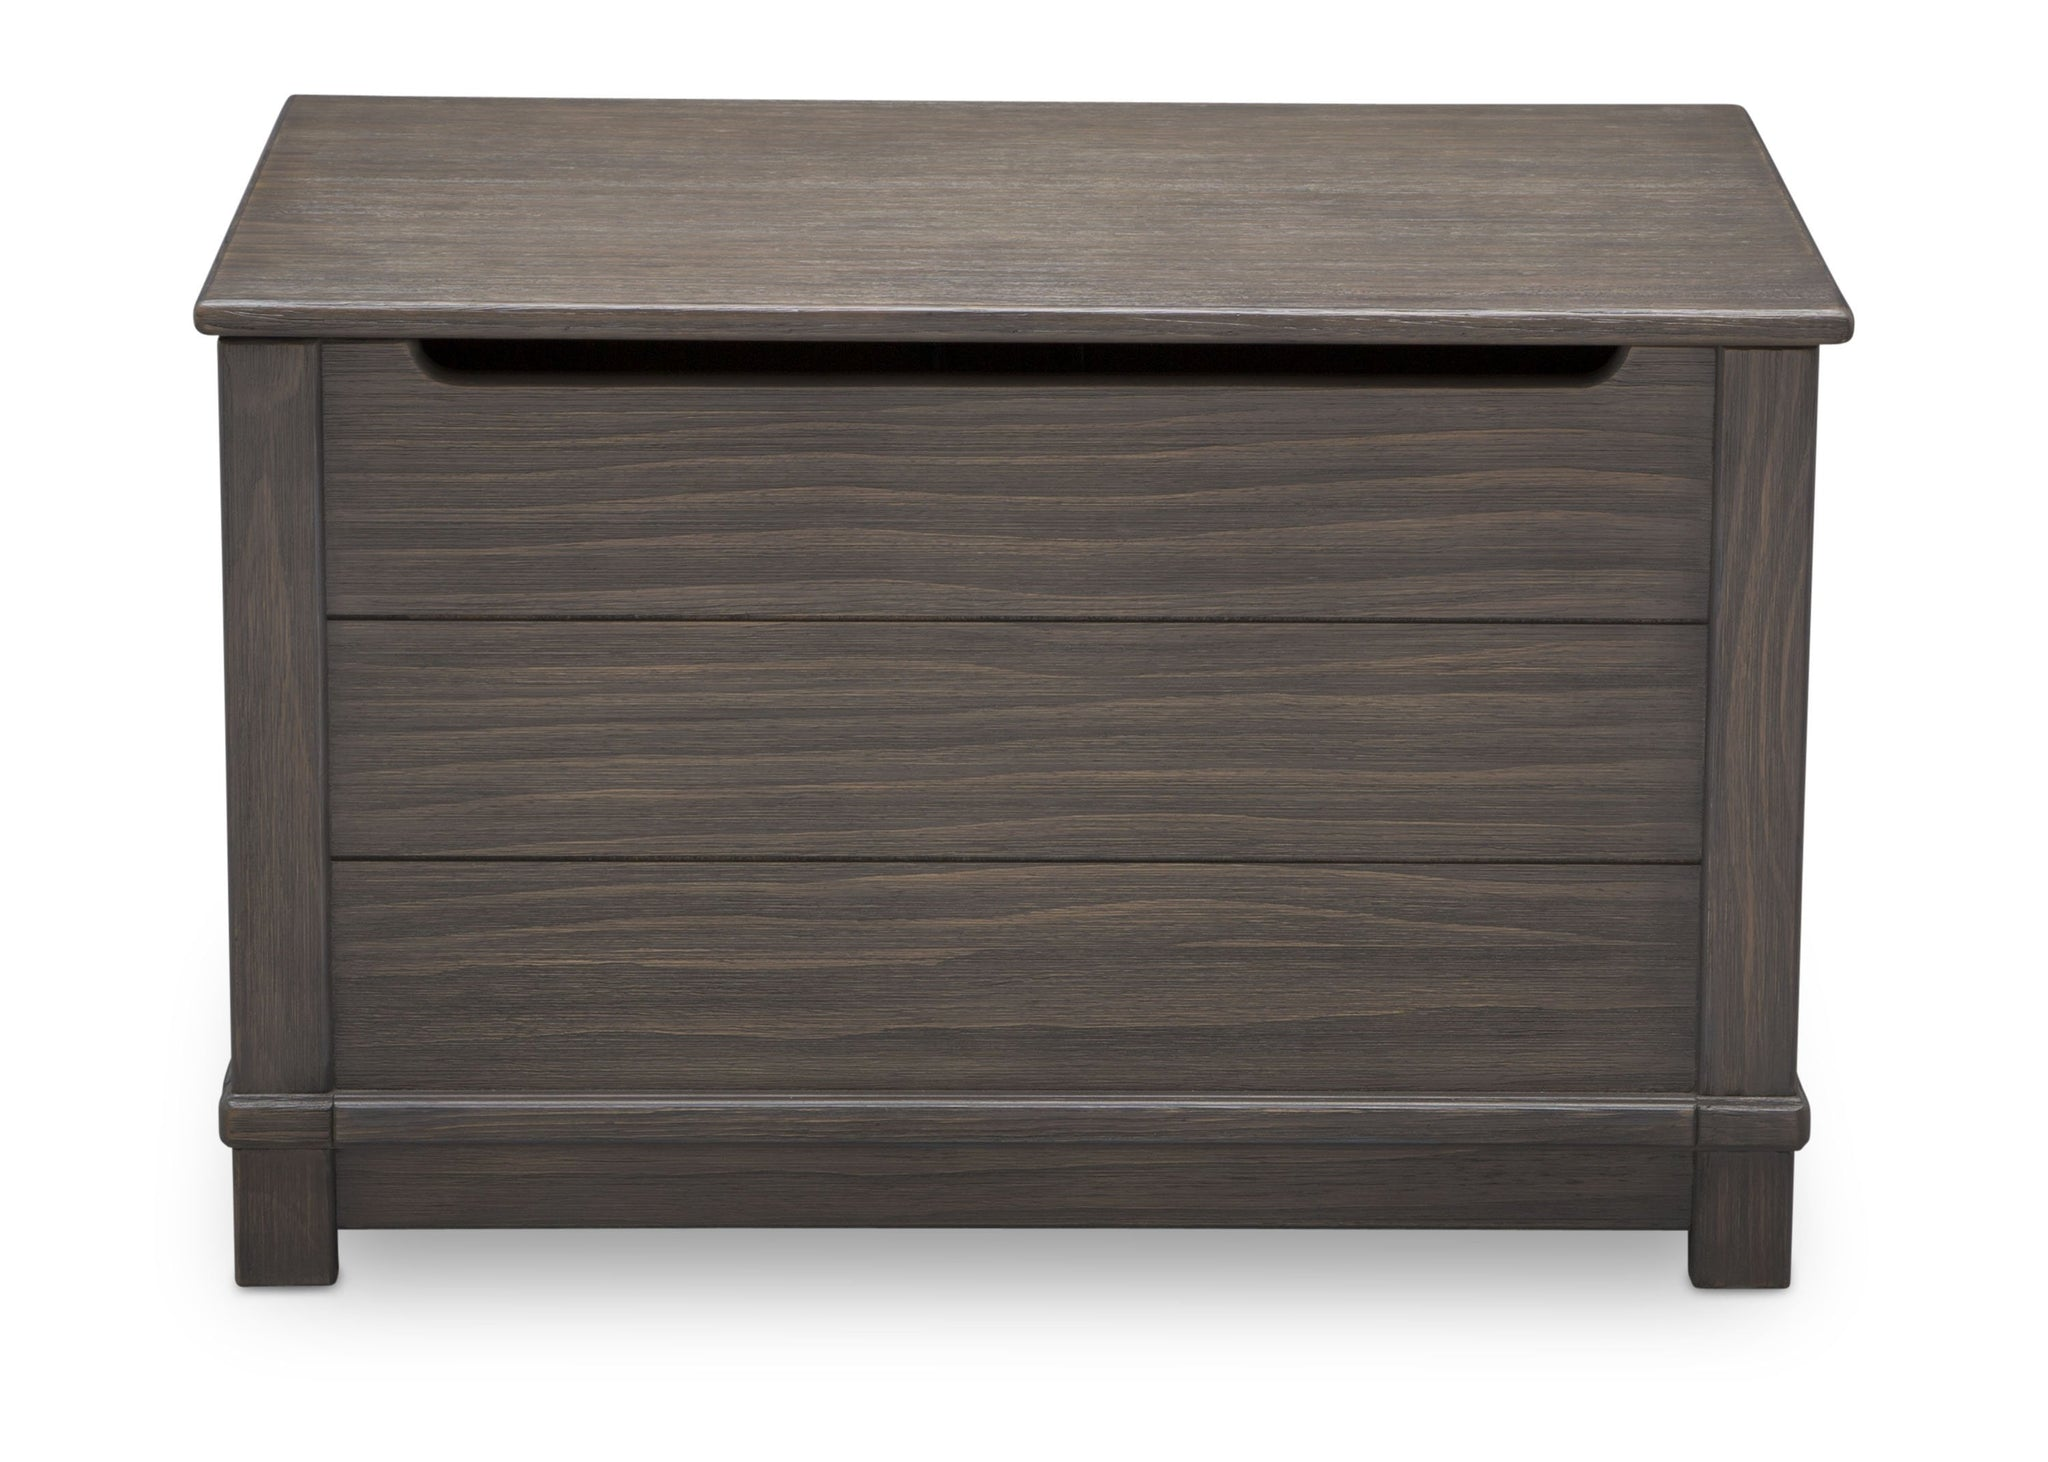 Delta Children Rustic Grey (084)  Monterey Farmhouse Hope Chest Toy Box (536450), Front View, a3a